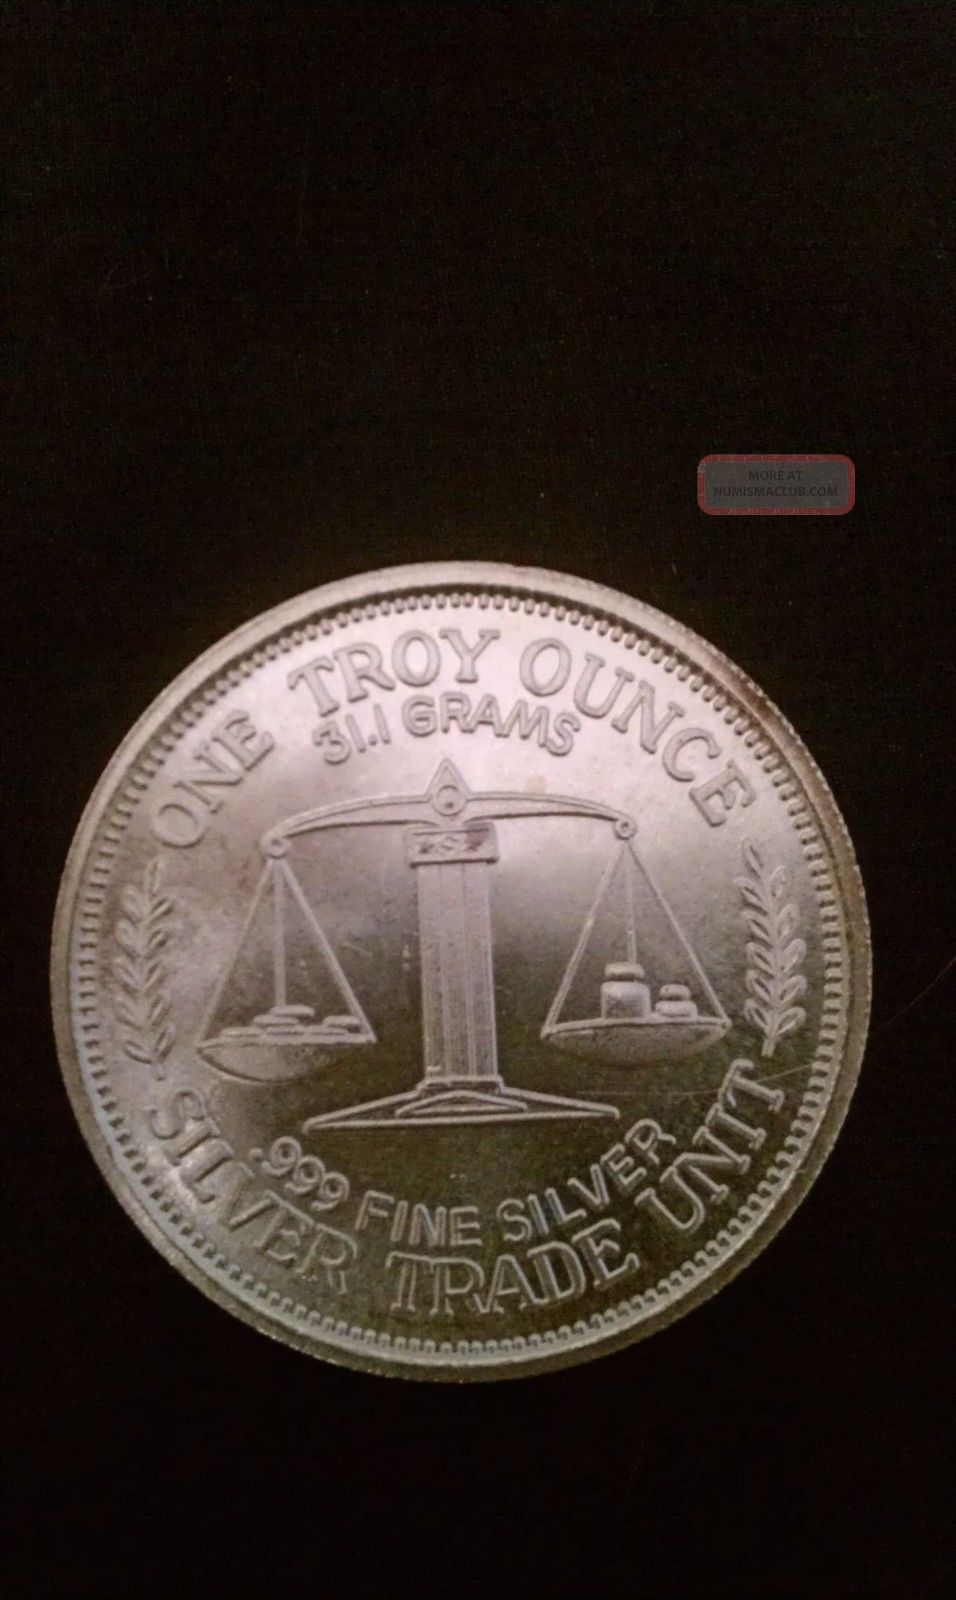 1984 Silver Trade Unit 999 One Troy Ounce Silver Round